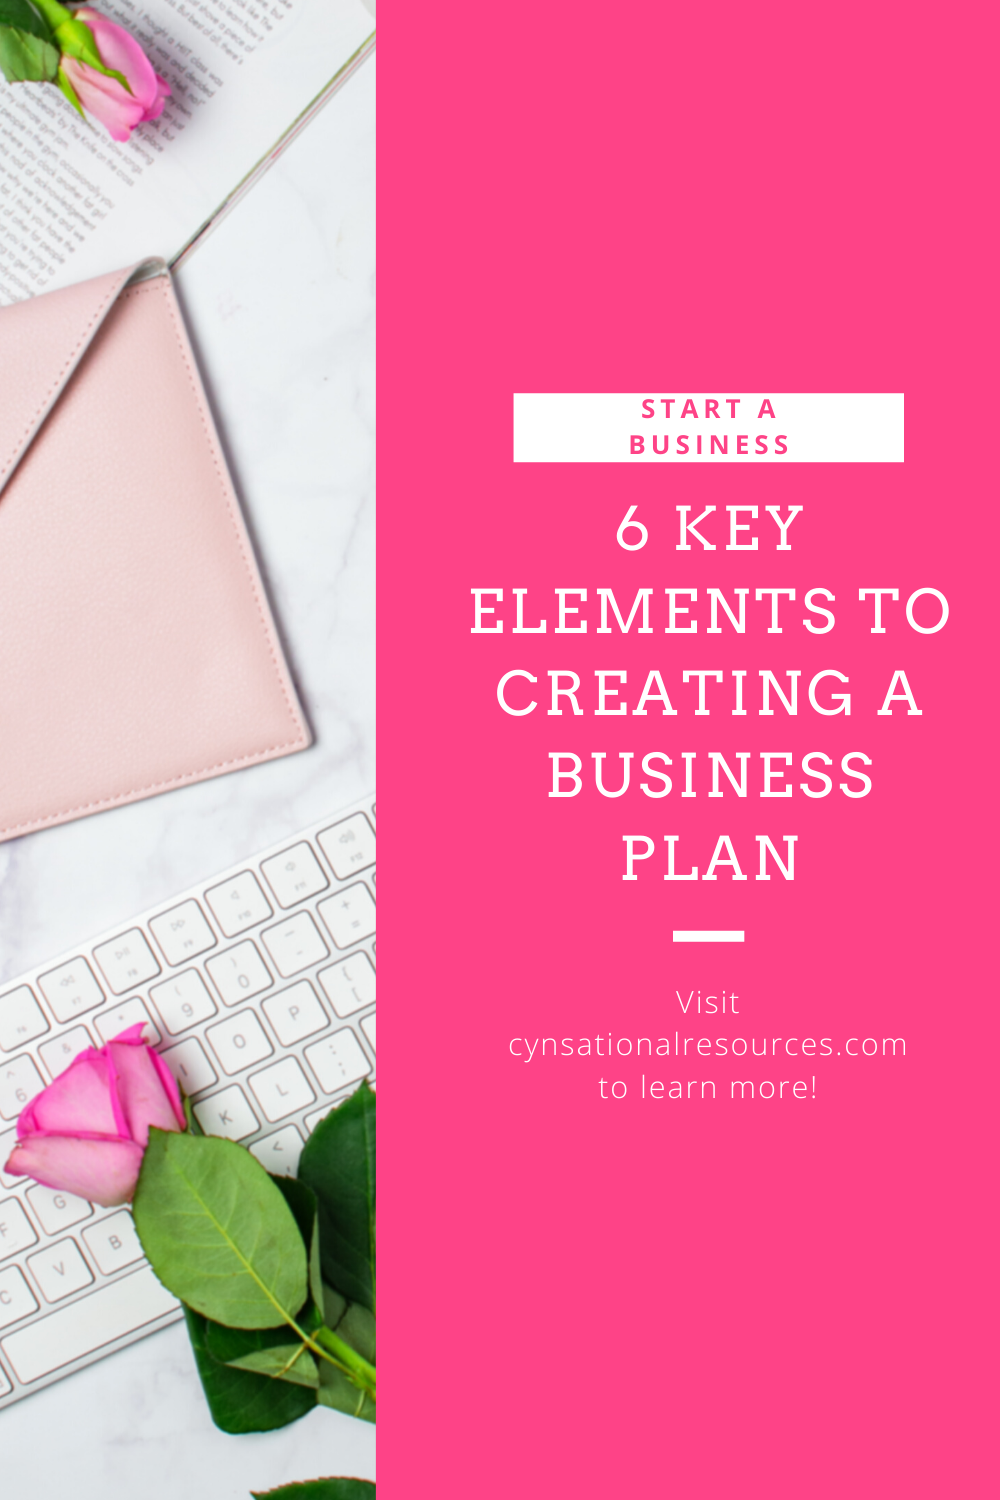 6 Key Elements to Creating a Business Plan